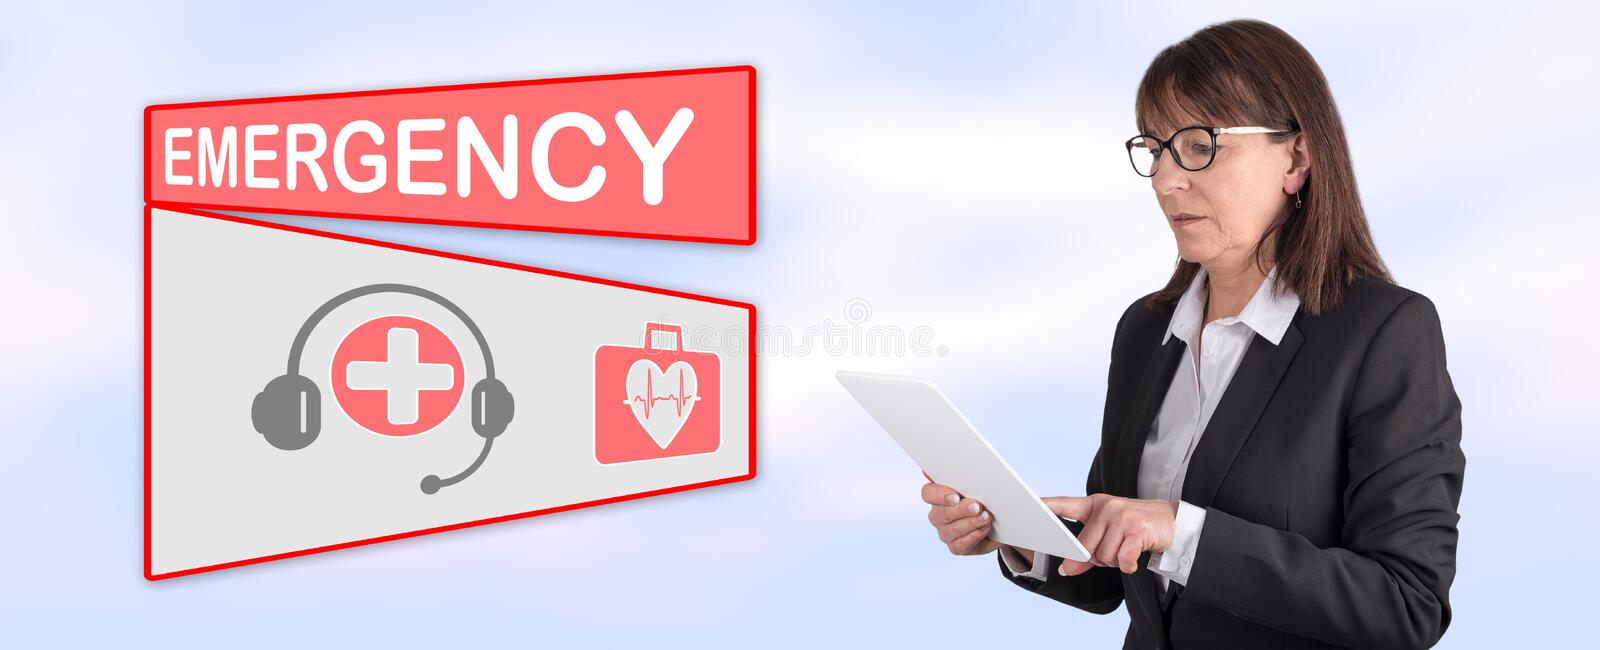 Concept of emergency royalty free stock image